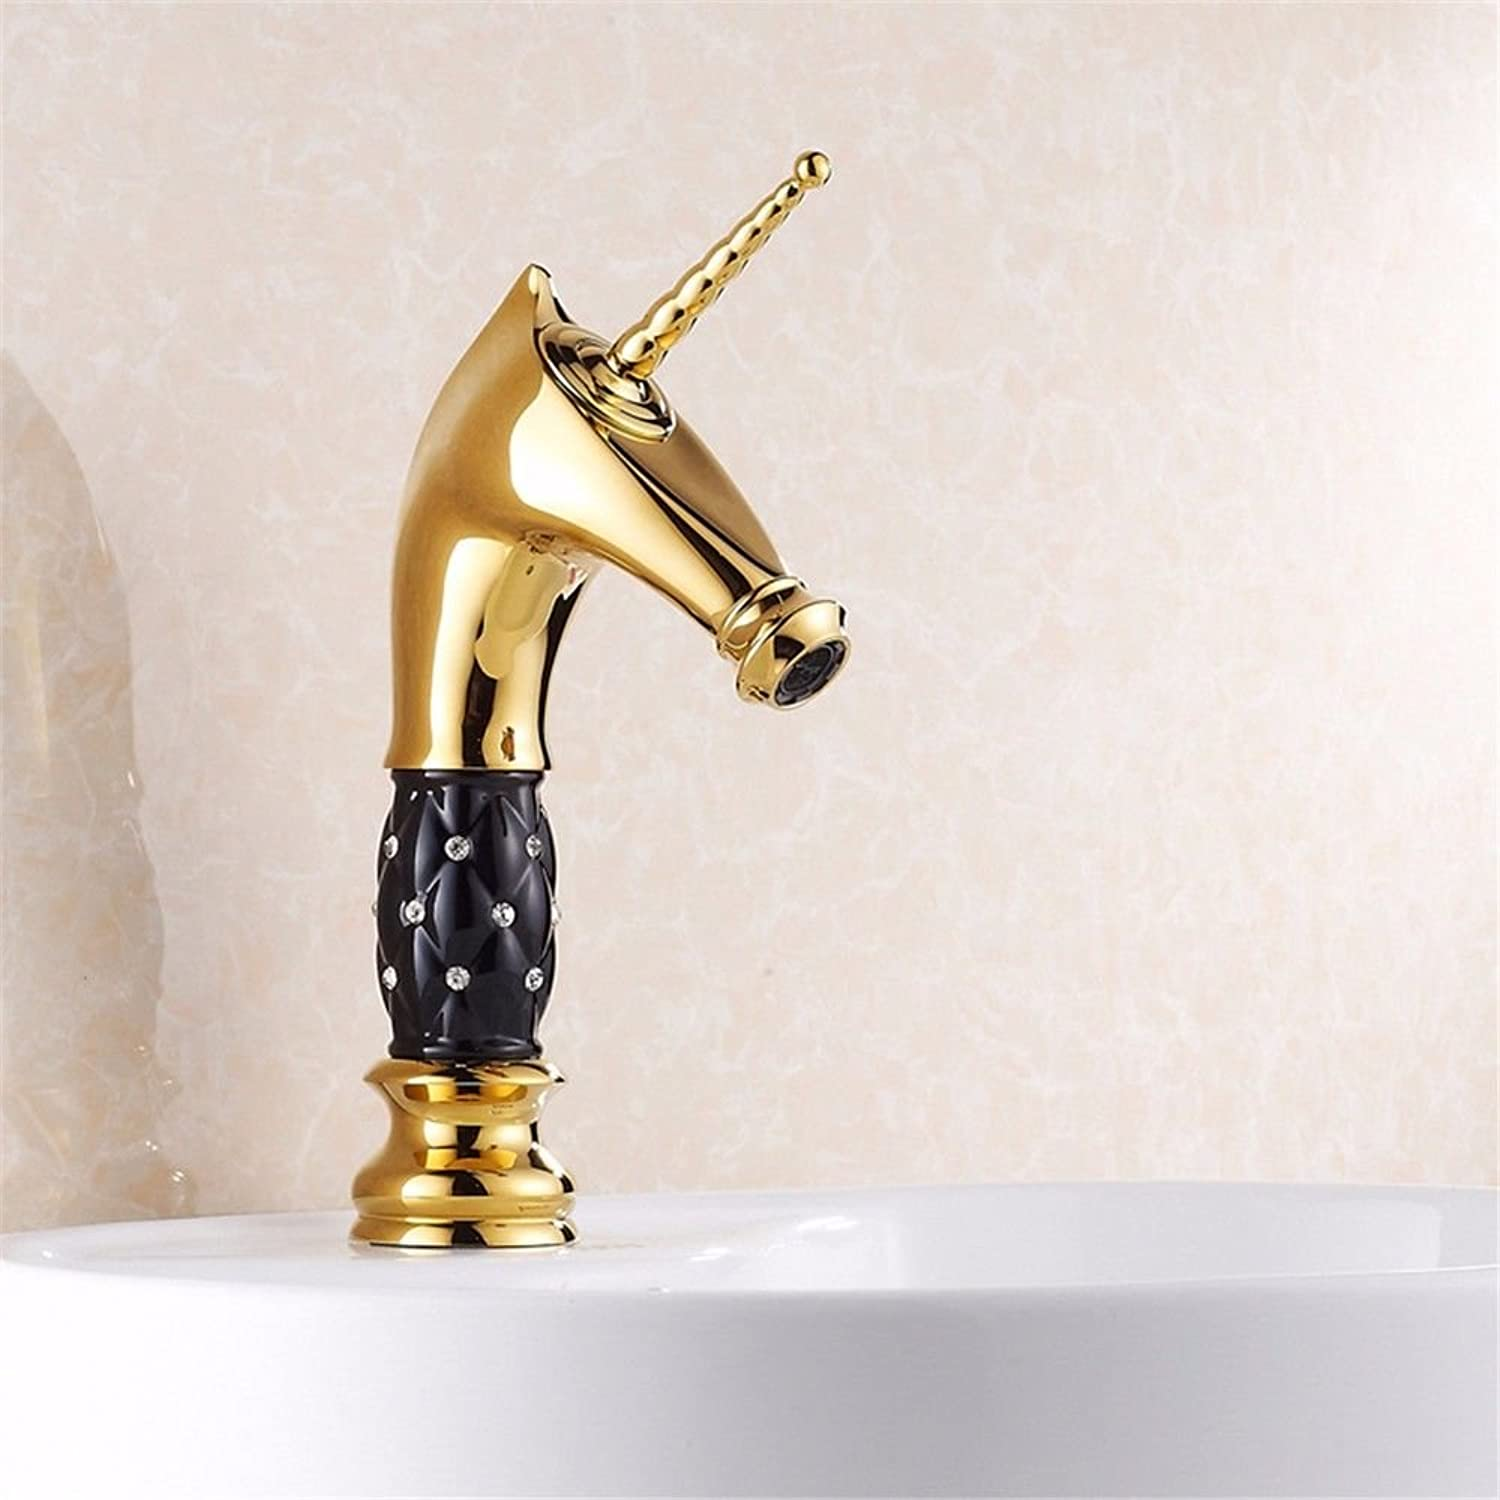 Lalaky Taps Faucet Kitchen Mixer Sink Waterfall Bathroom Mixer Basin Mixer Tap for Kitchen Bathroom and Washroom gold Plated